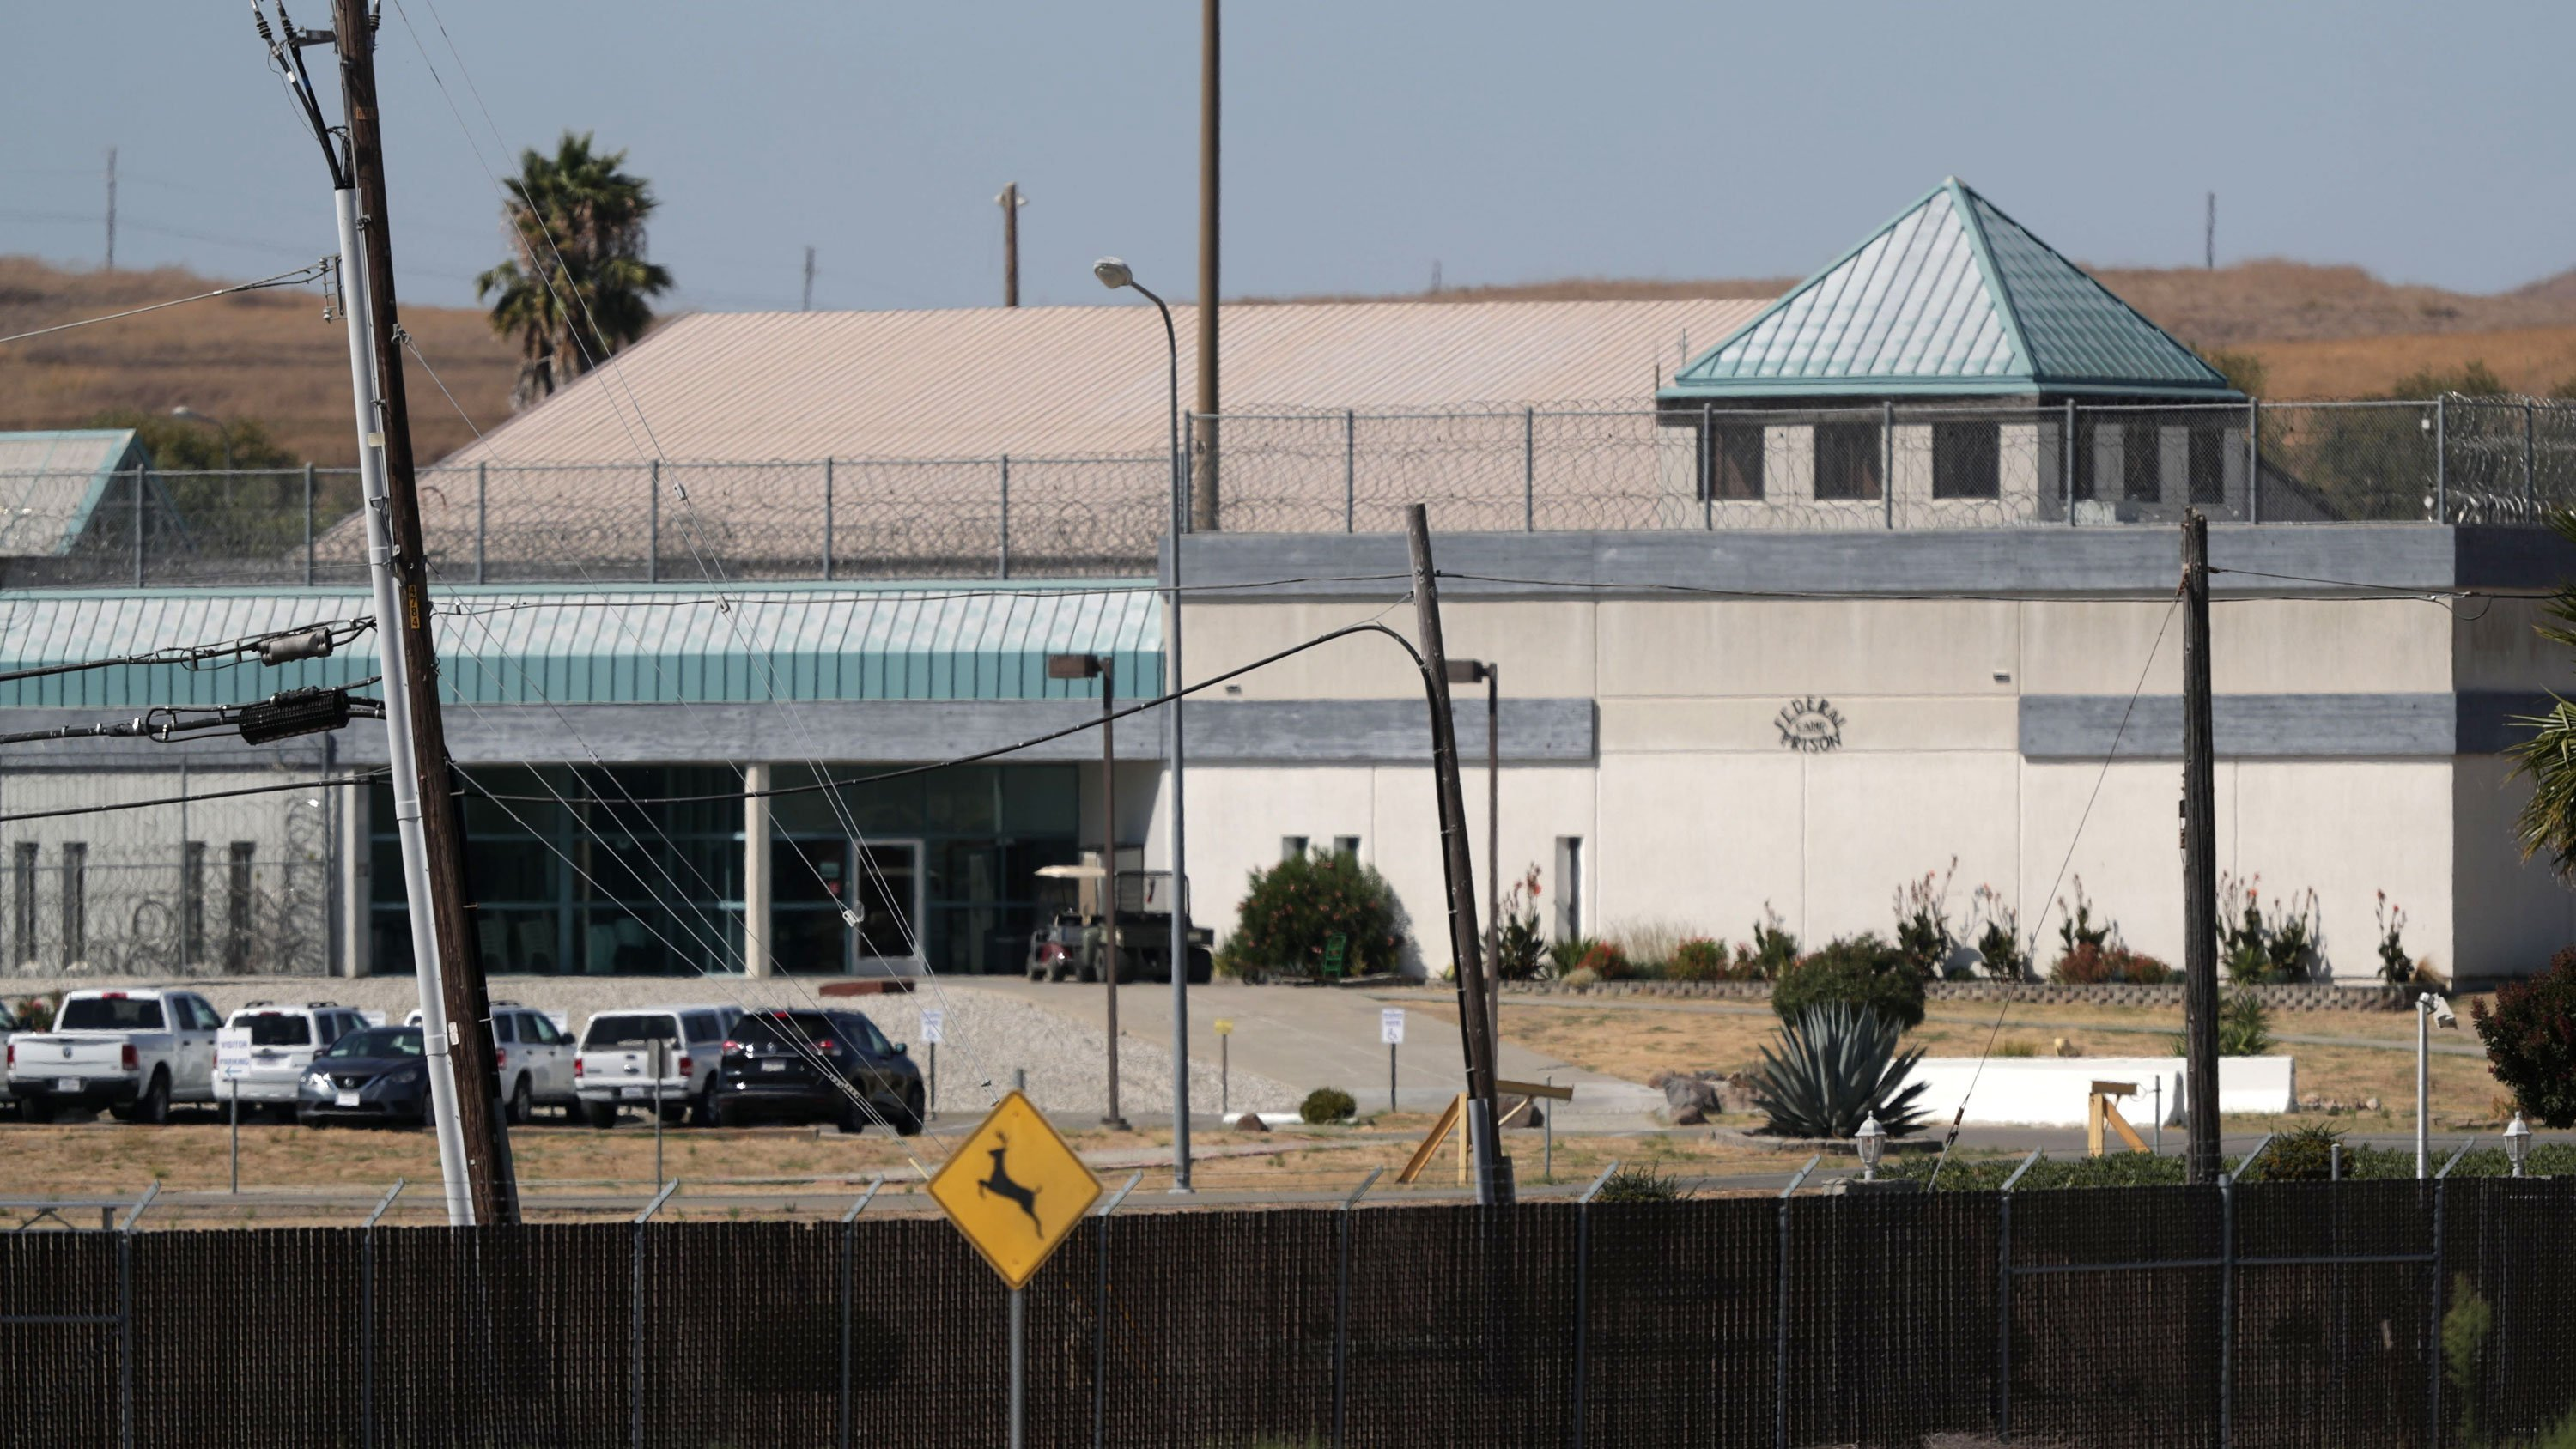 This is the California prison where Felicity Huffman wants to spend her 14-day sentence